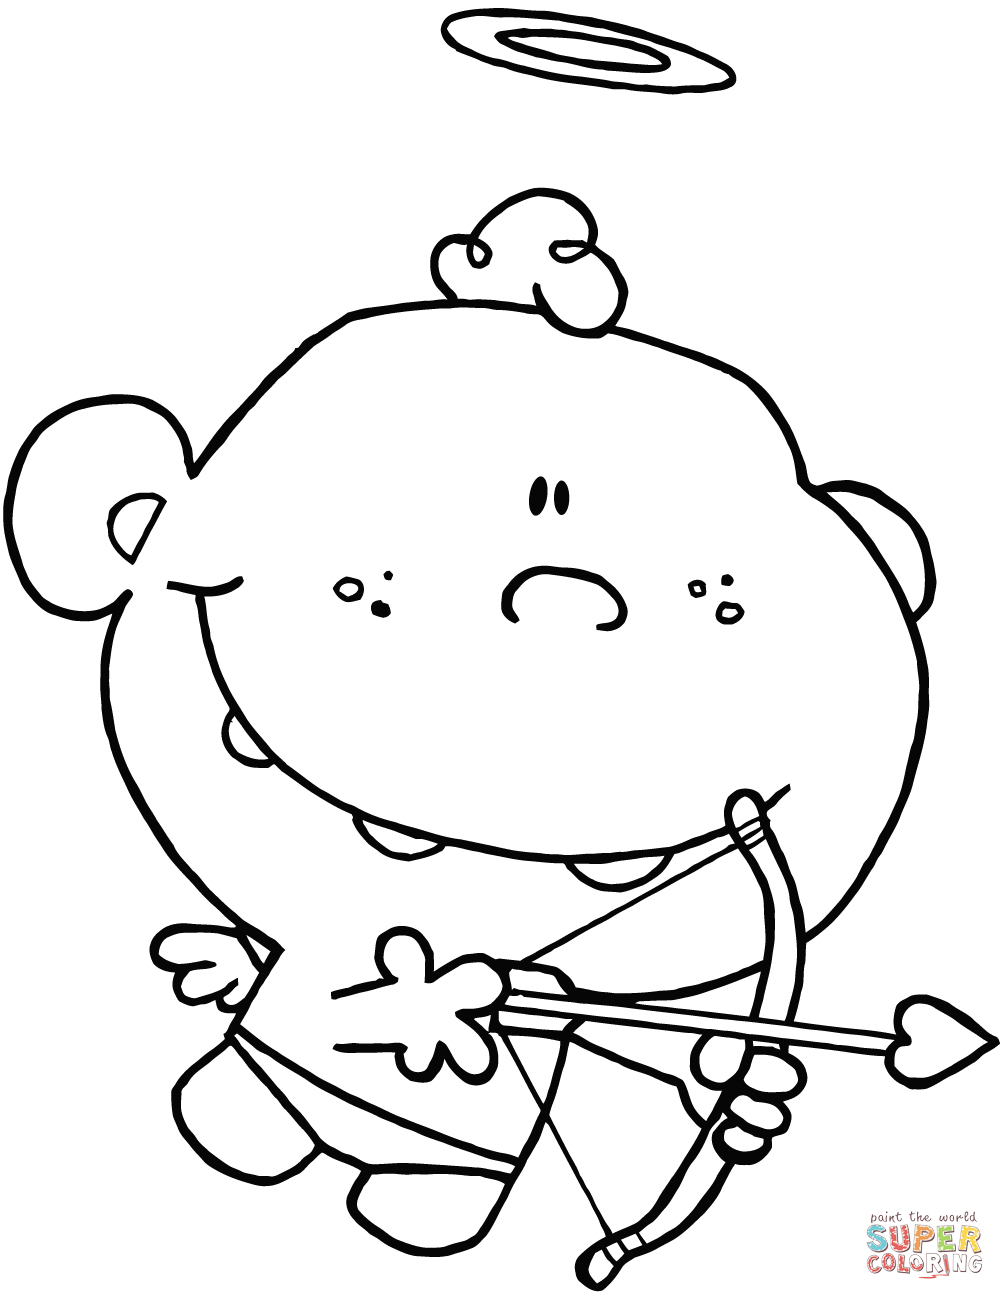 1005x1300 Cupid Drawing Cartoon Cartoon Cupid With Bow And Arrow Coloring